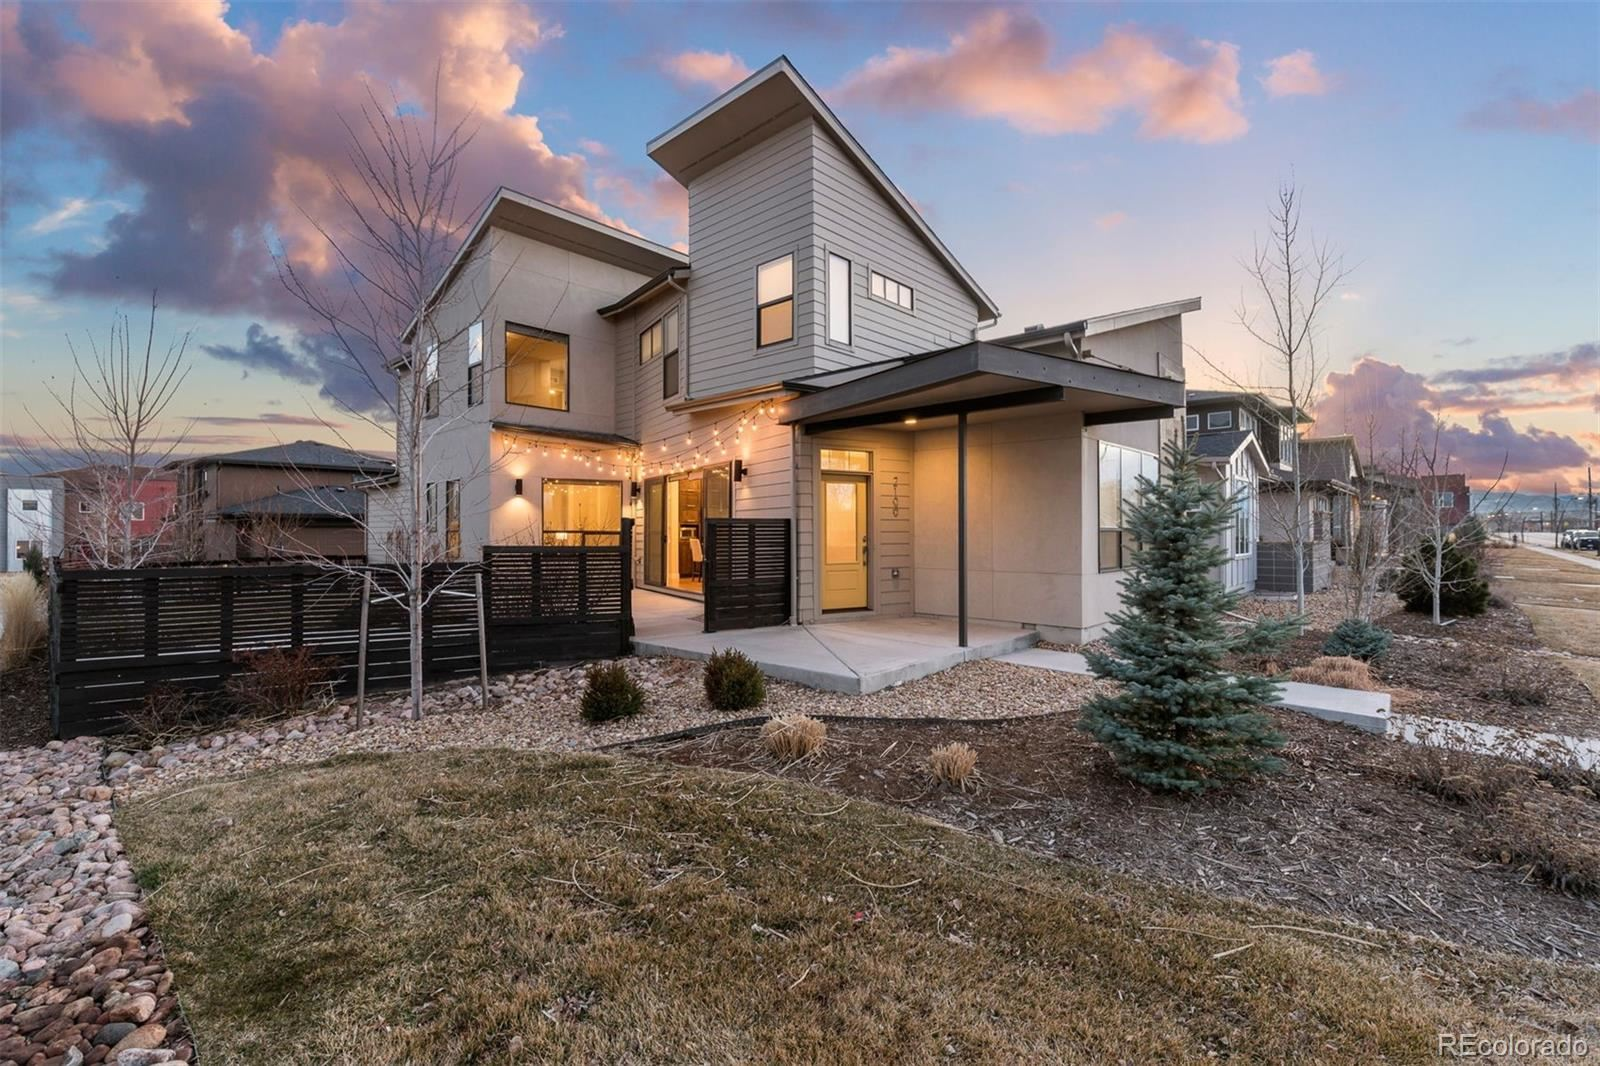 2100 W 68th Avenue, Denver, CO 80221 - #: 5379286